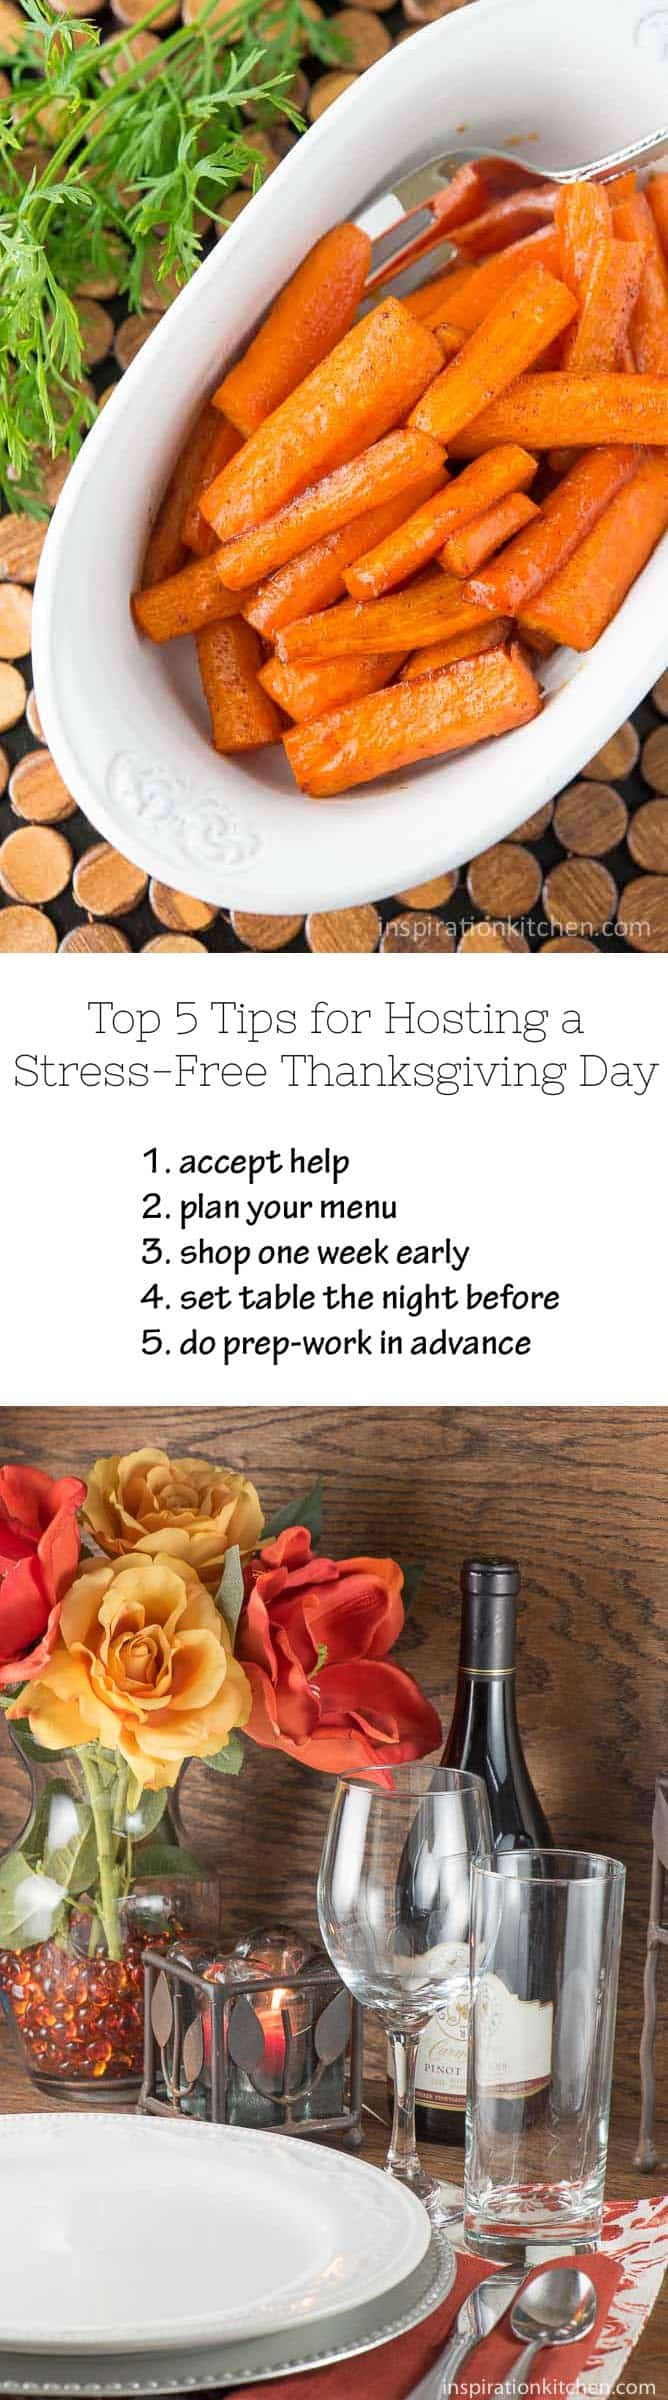 Top 5 Tips for Hosting a Stress-Free Thanksgiving Day - Inspiration Kitchen